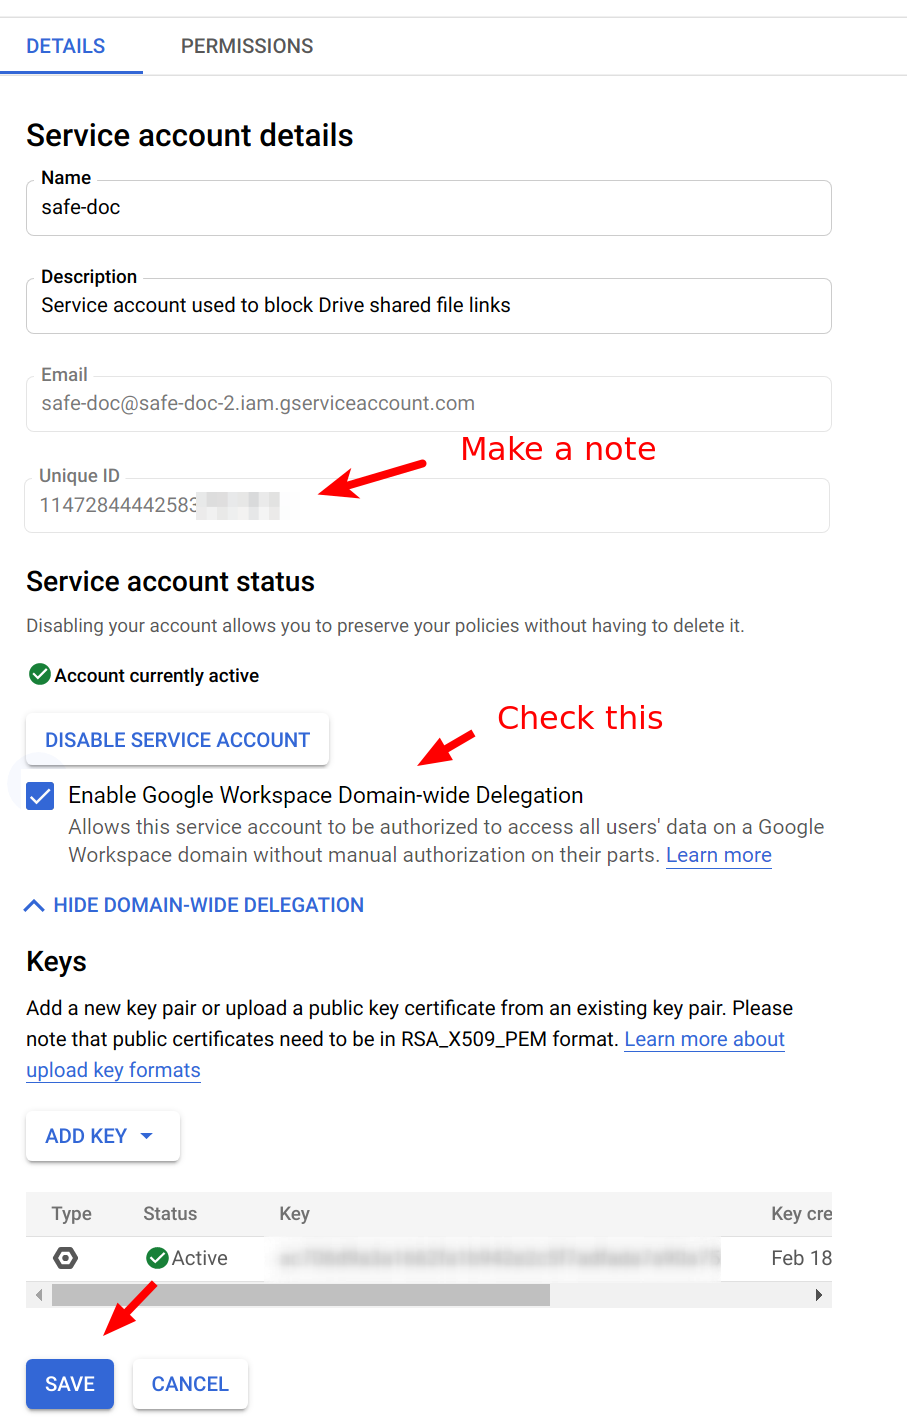 Enable Domain-wide delegation for Google Service account